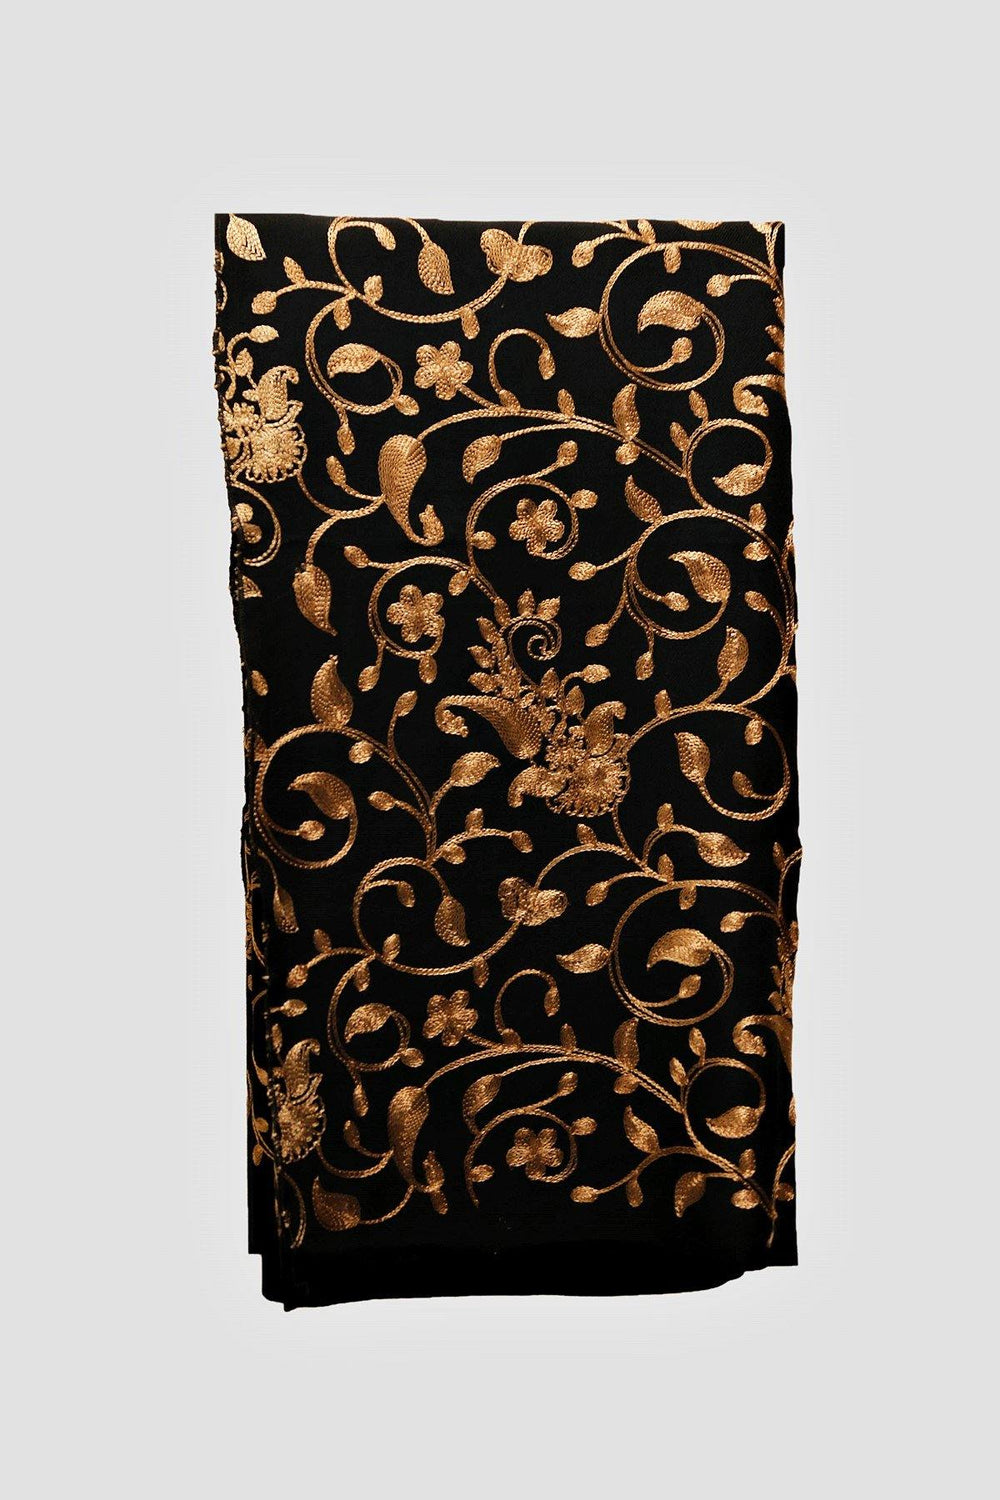 Golden Floral Leaves Embroidered Shawl